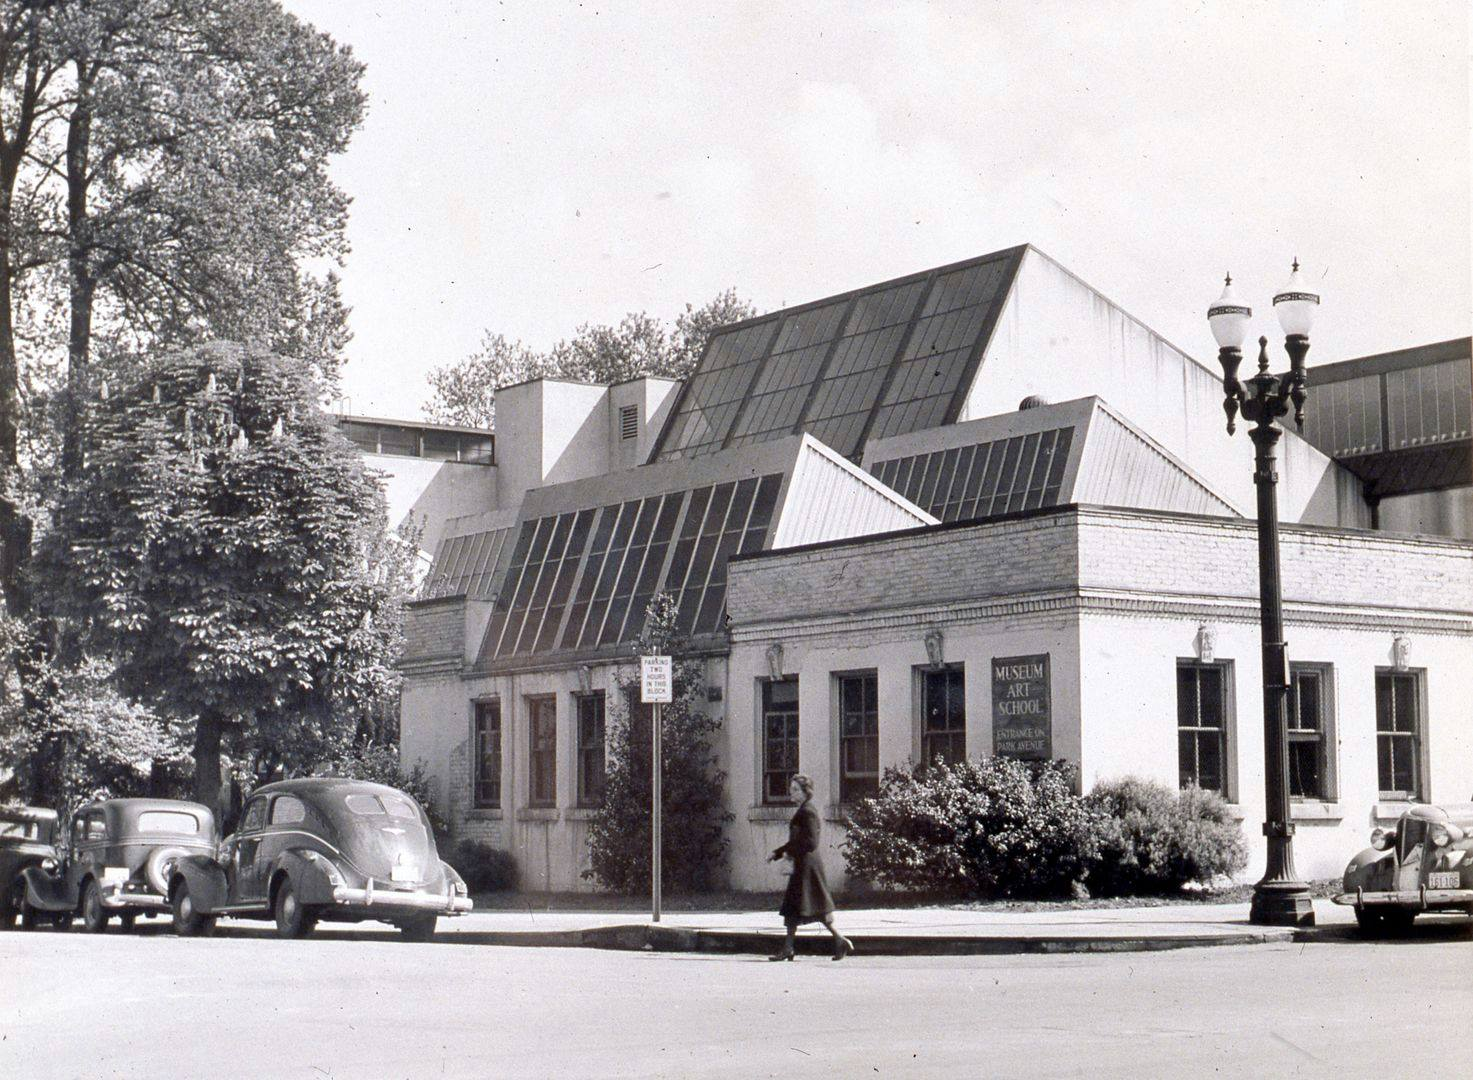 A horizontal black-and-white photograph of a building at a three-quarter view. The building is faced in light-colored masonry with seven vertical, rectangular windows facing on the left side of the building; three on the right side. Centered are three large angled skylights facing left. A twin, ornamental street lamp is visible on the corner of the street. 3 cars are parked along the sidewalk outside the building. A darkly clothed figure walks from right to center of photo crossing the street.